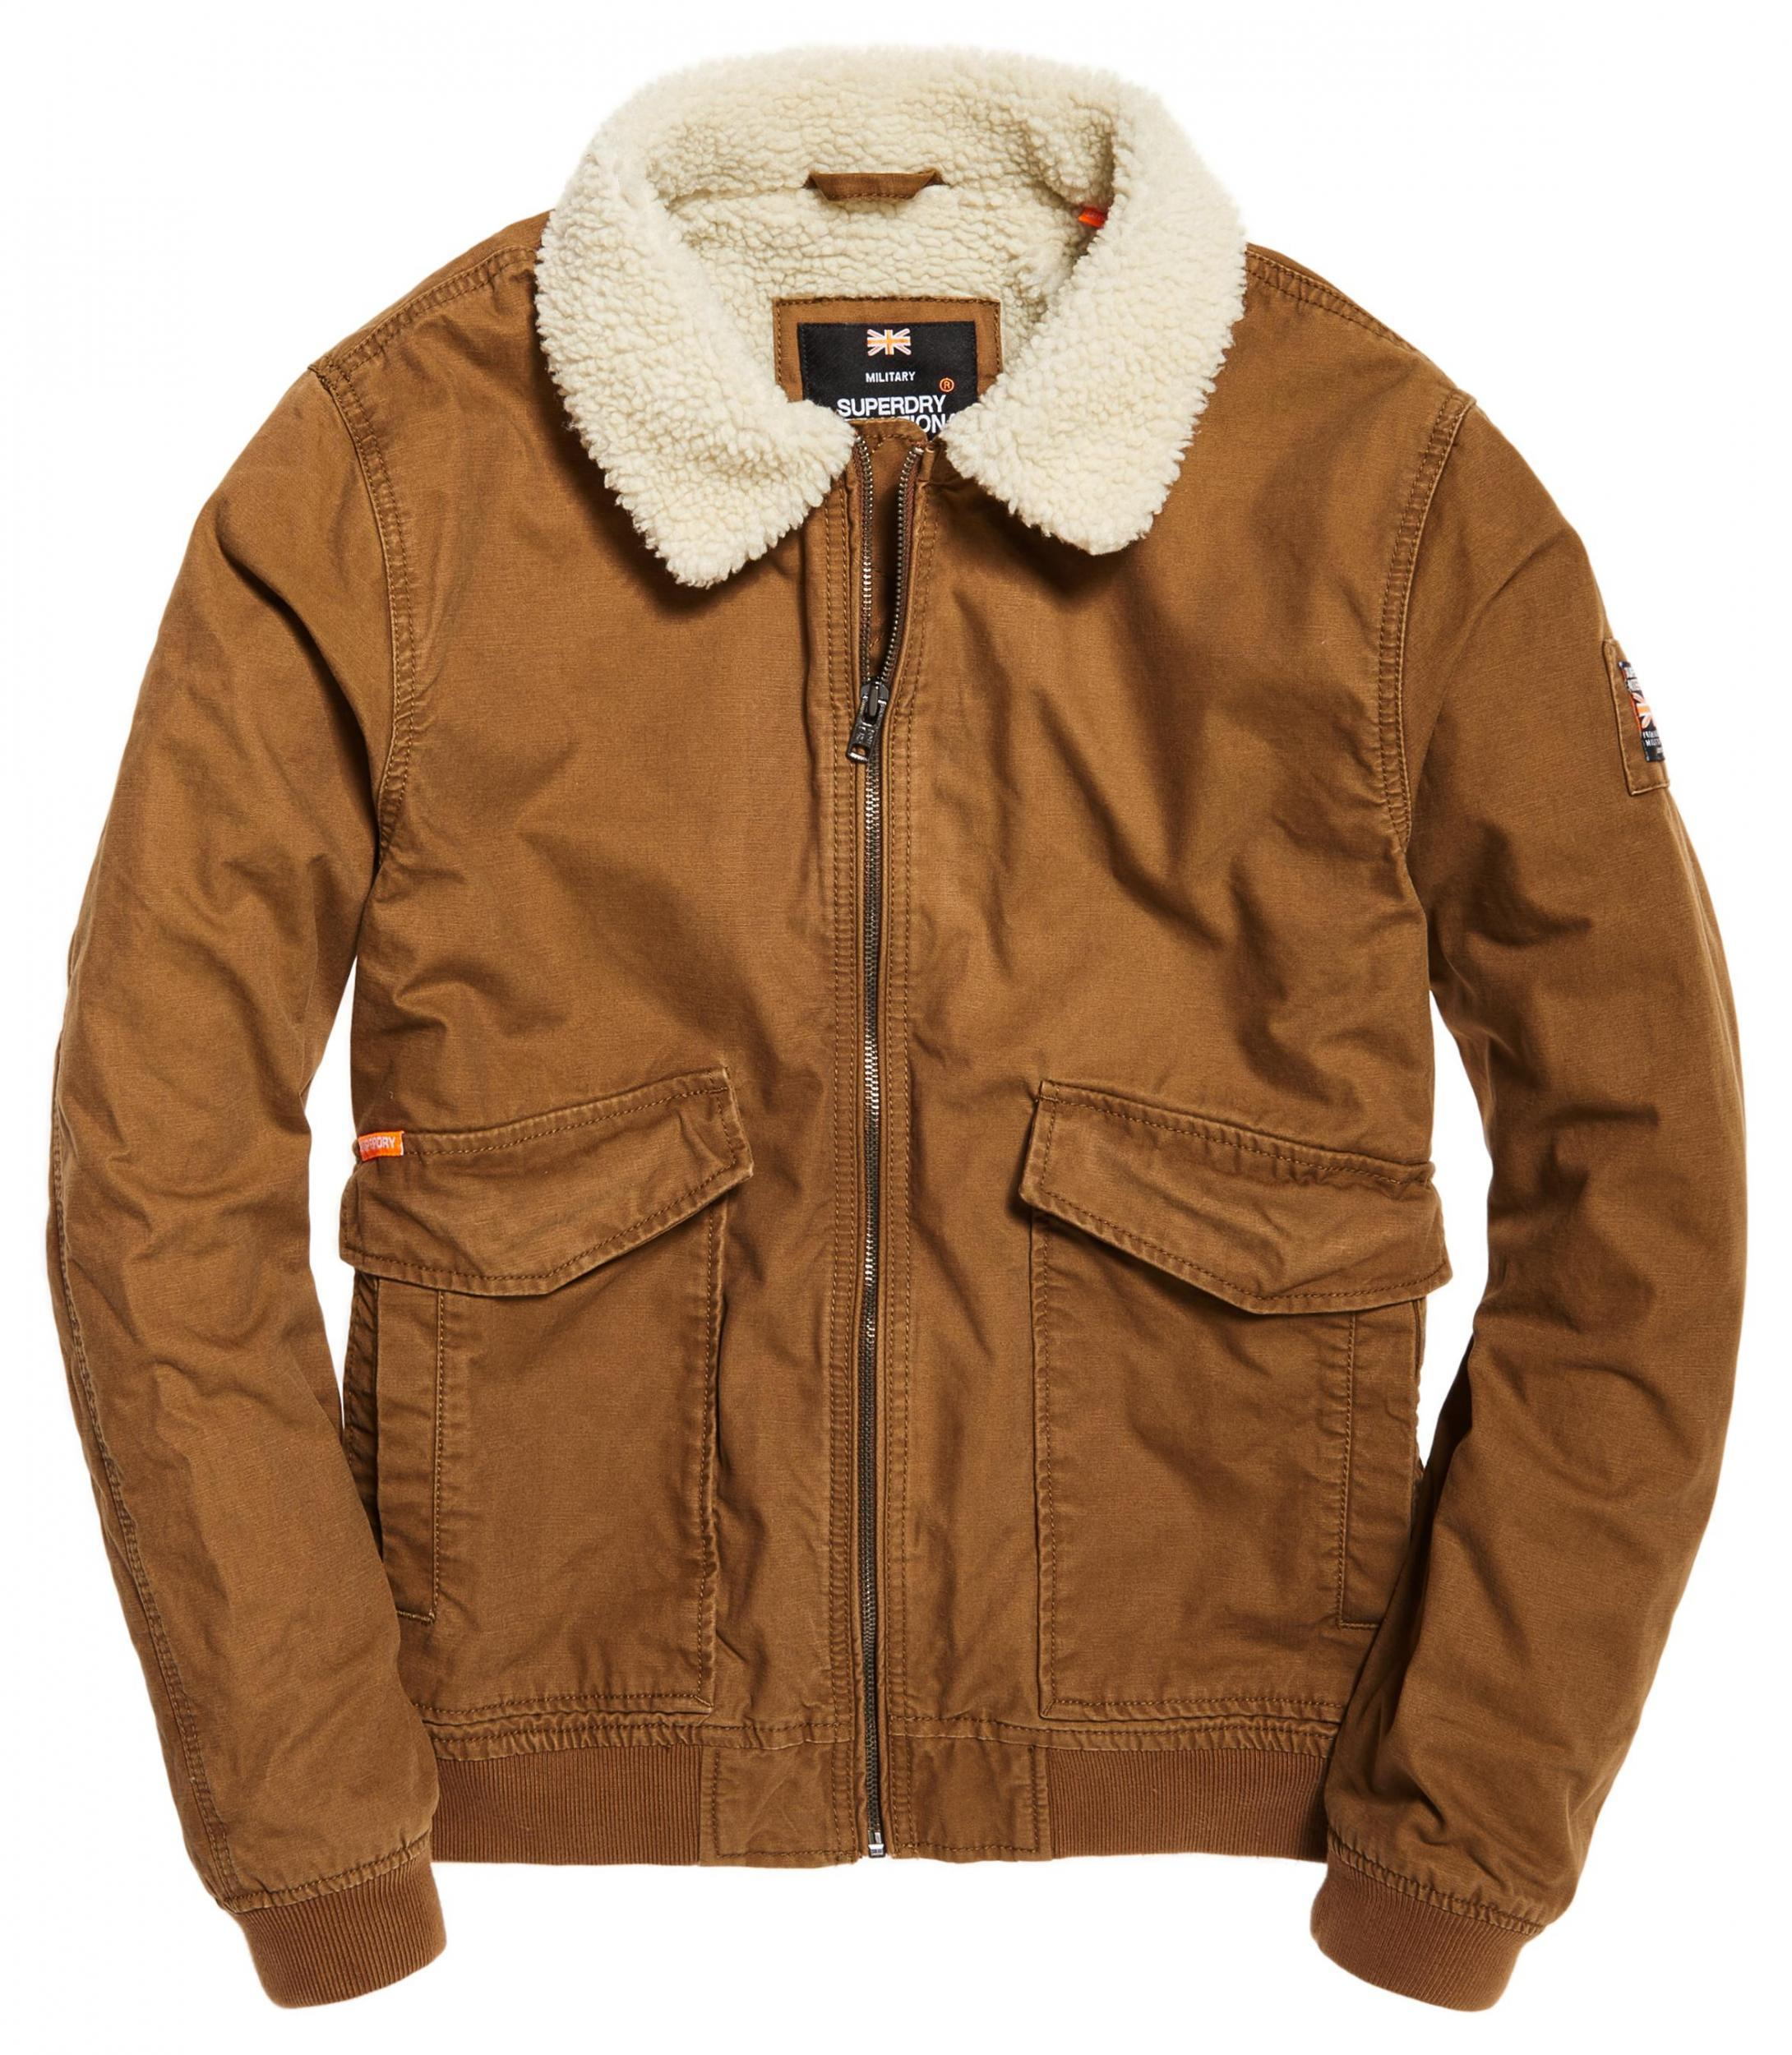 fc178d96d94d8 Superdry hits: 8 jackets for him and her | The Independent